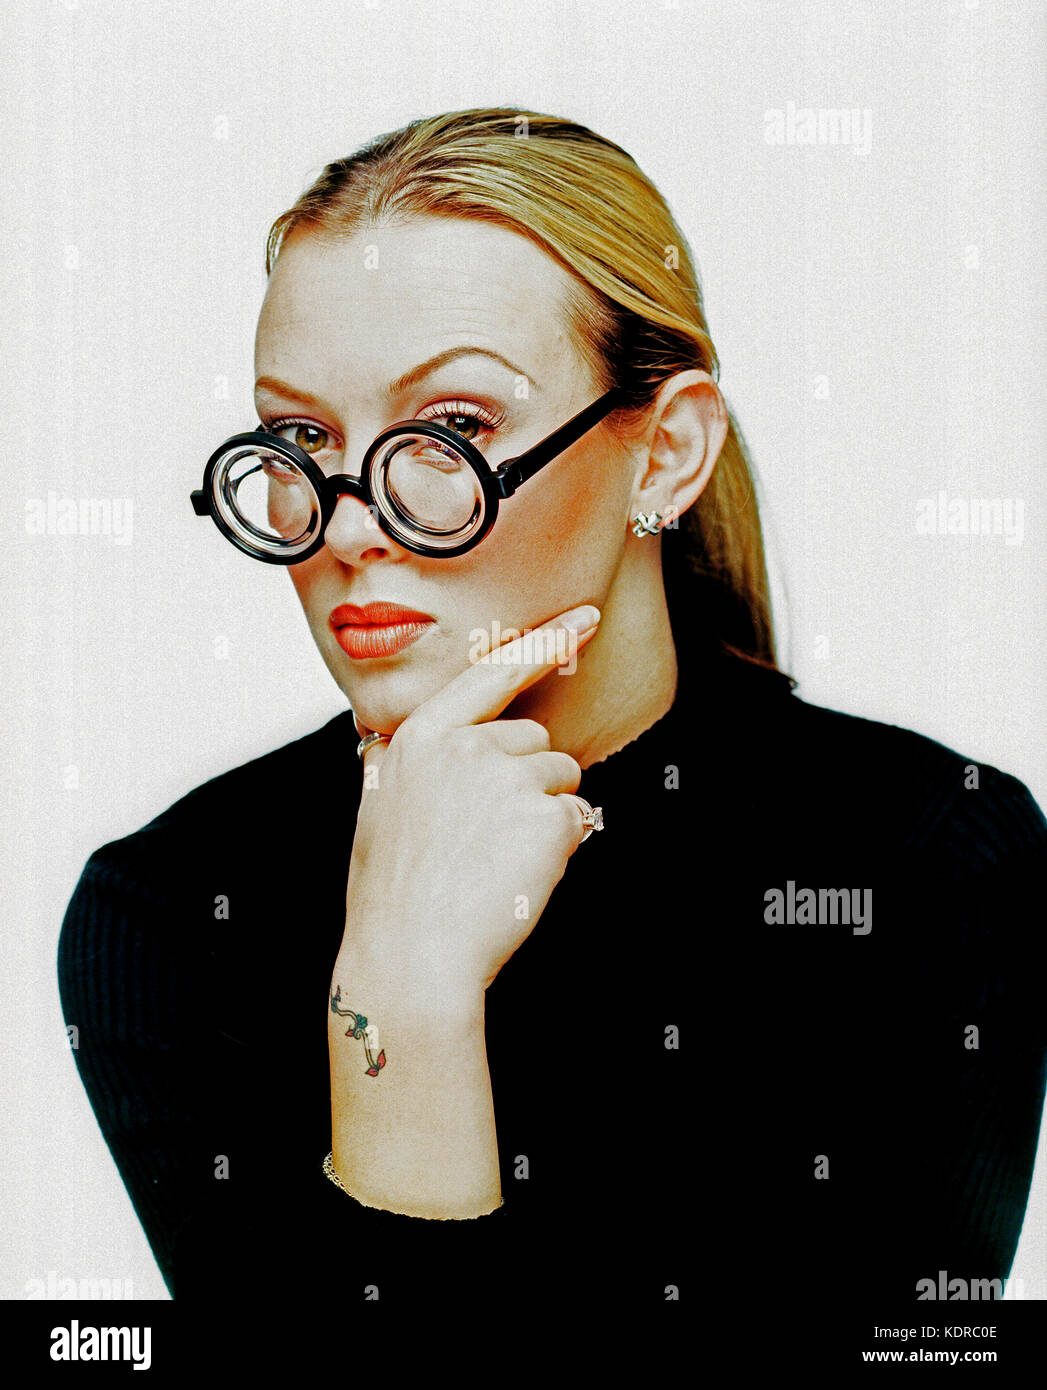 Young woman. Studio portrait. Thick lense spectacles. - Stock Image